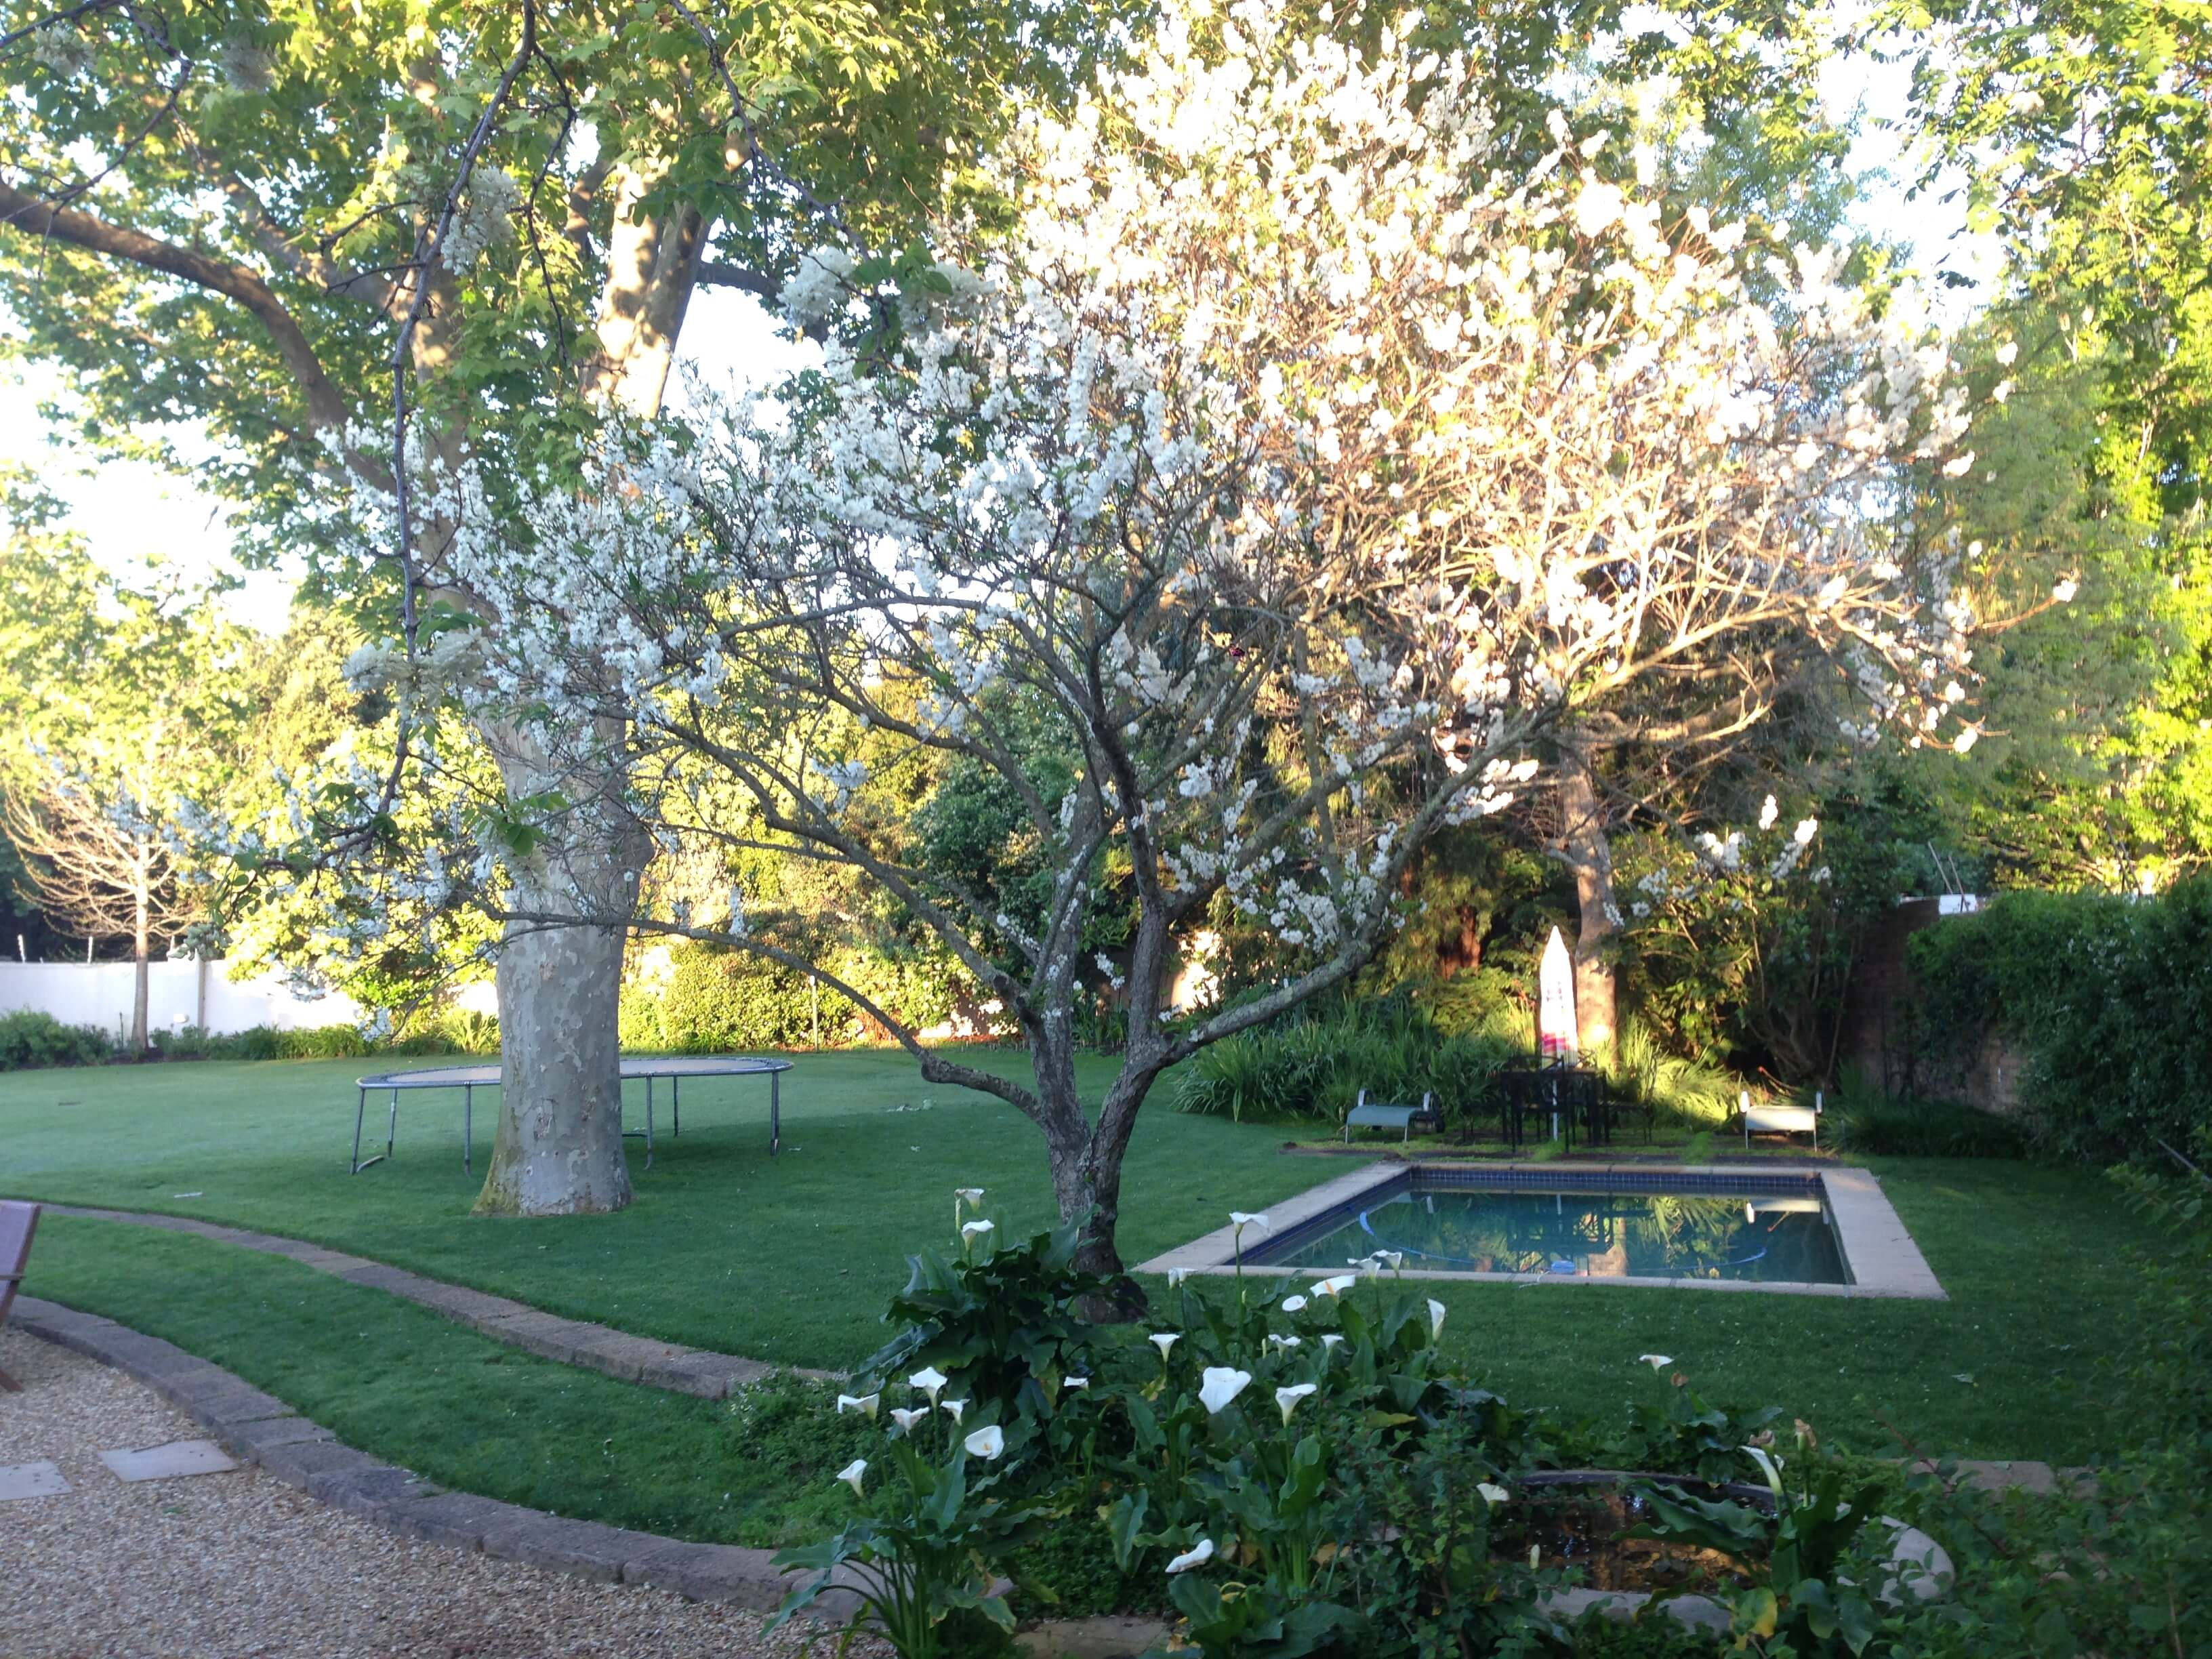 vista of a suburban garden in flower